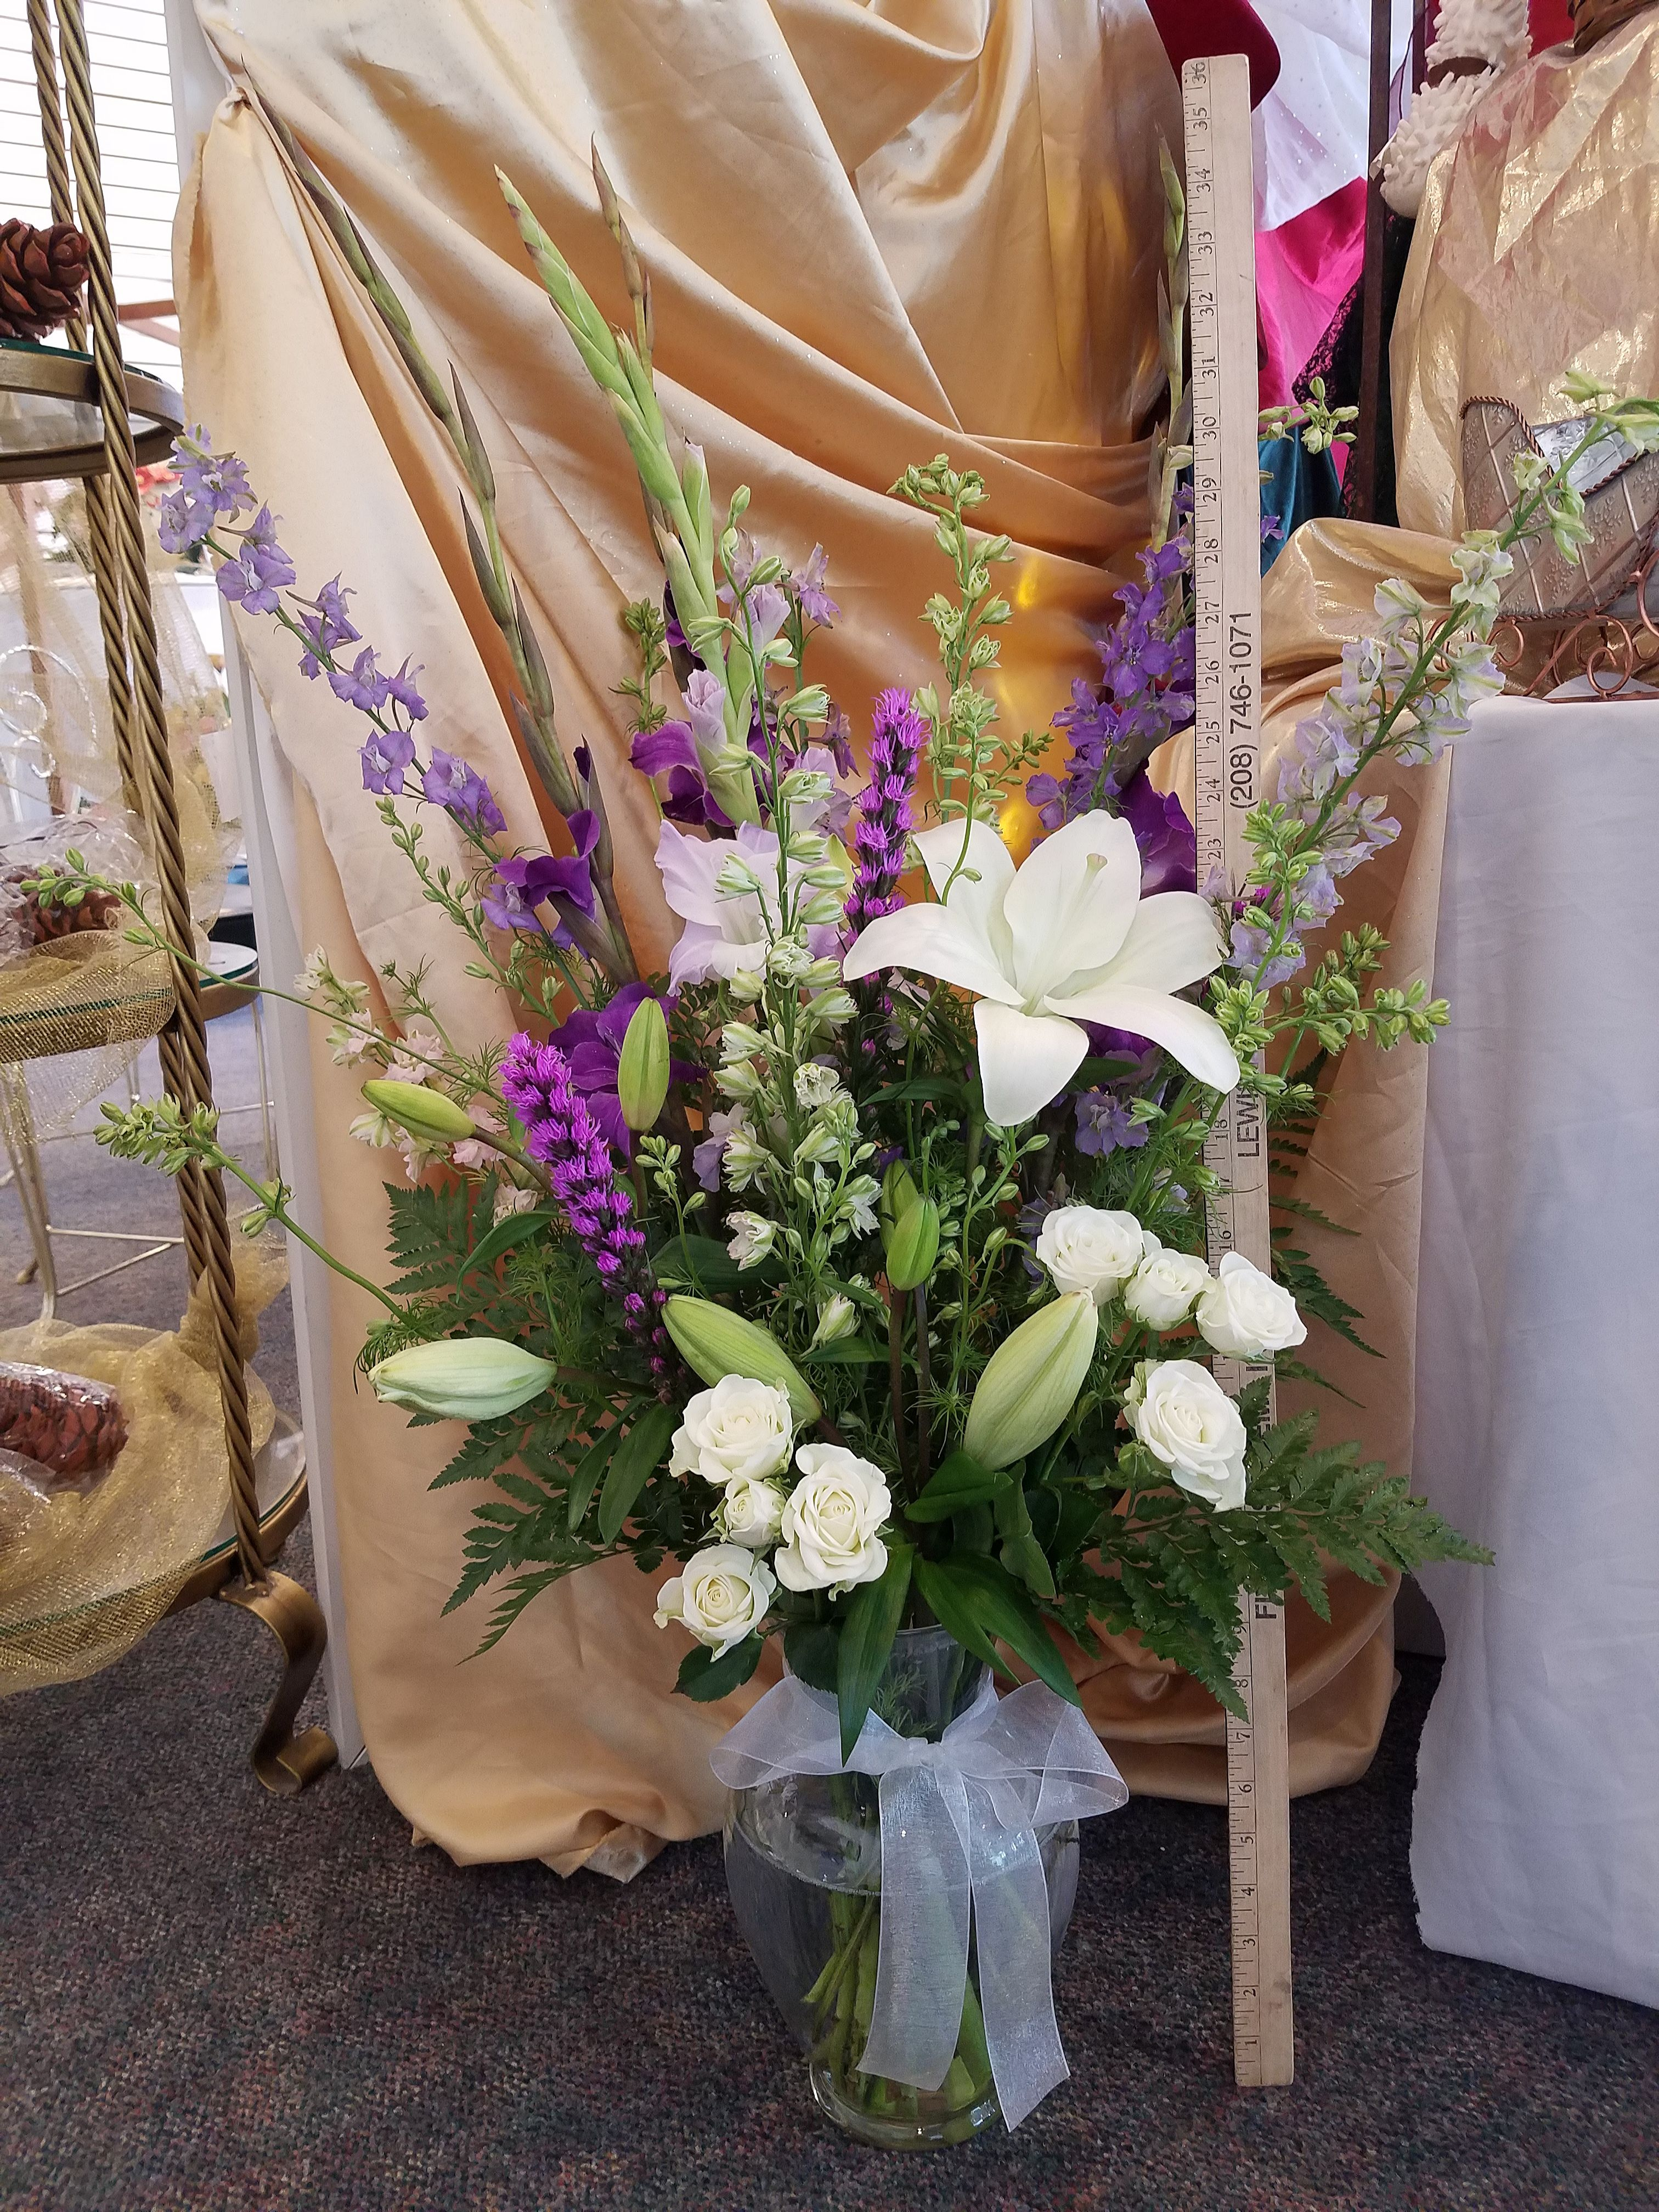 A tall vase in purples and whites with gladiolas, spray